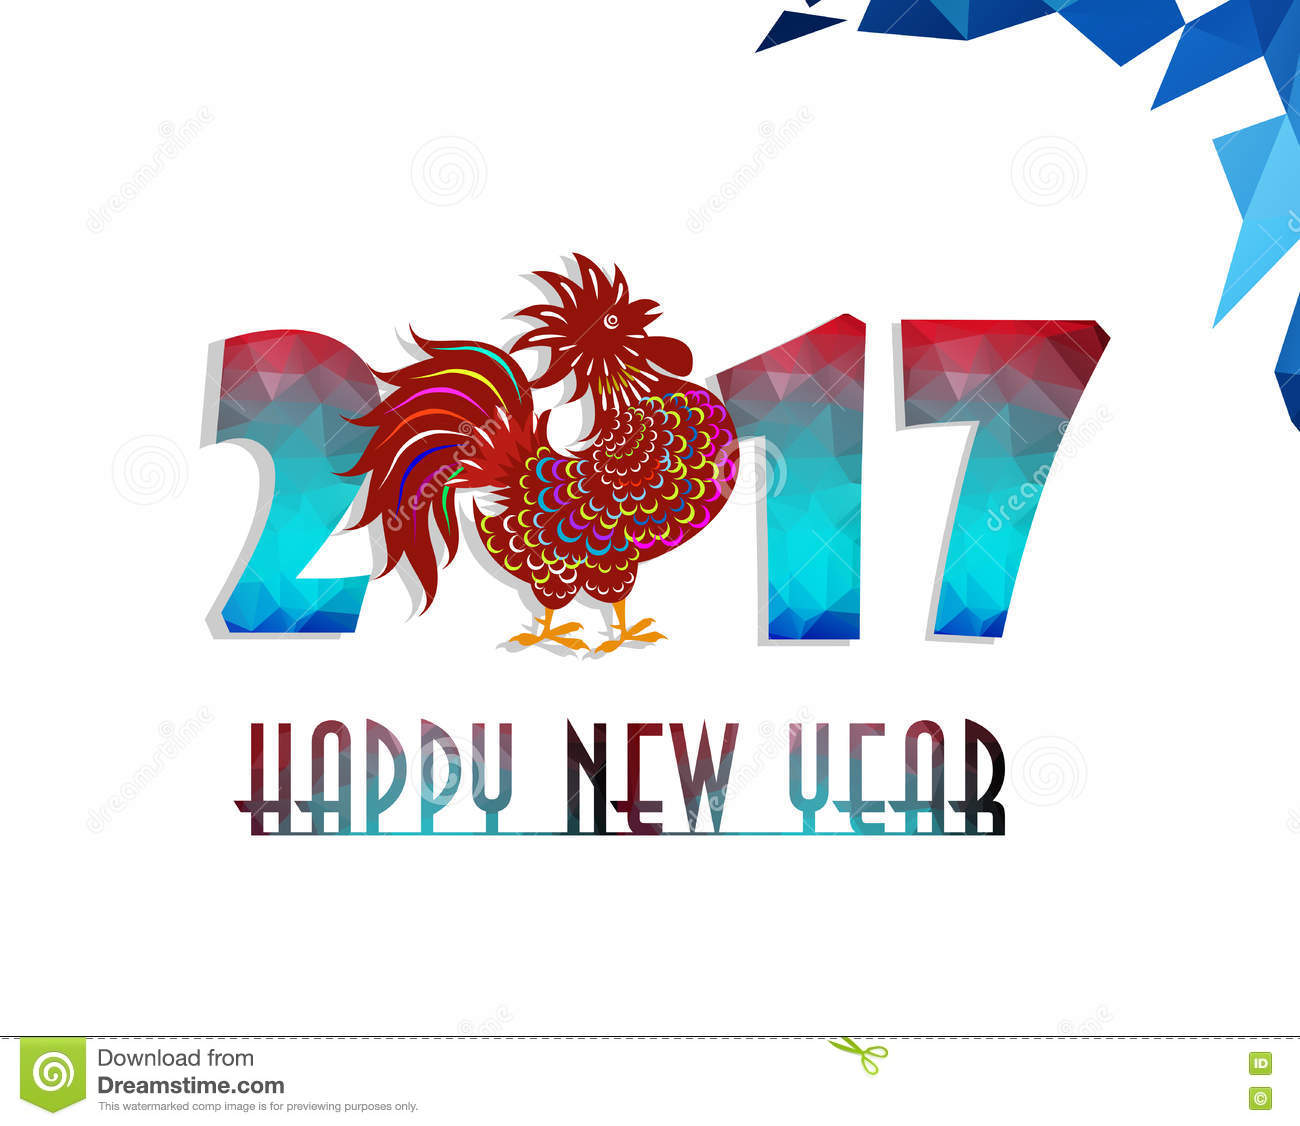 New year 2017 greeting pictures year of rooster happy chinese new year - Happy New Year 2017 Year Of Rooster With Beautiful Colorful And Bright Polygon Rooster Stock